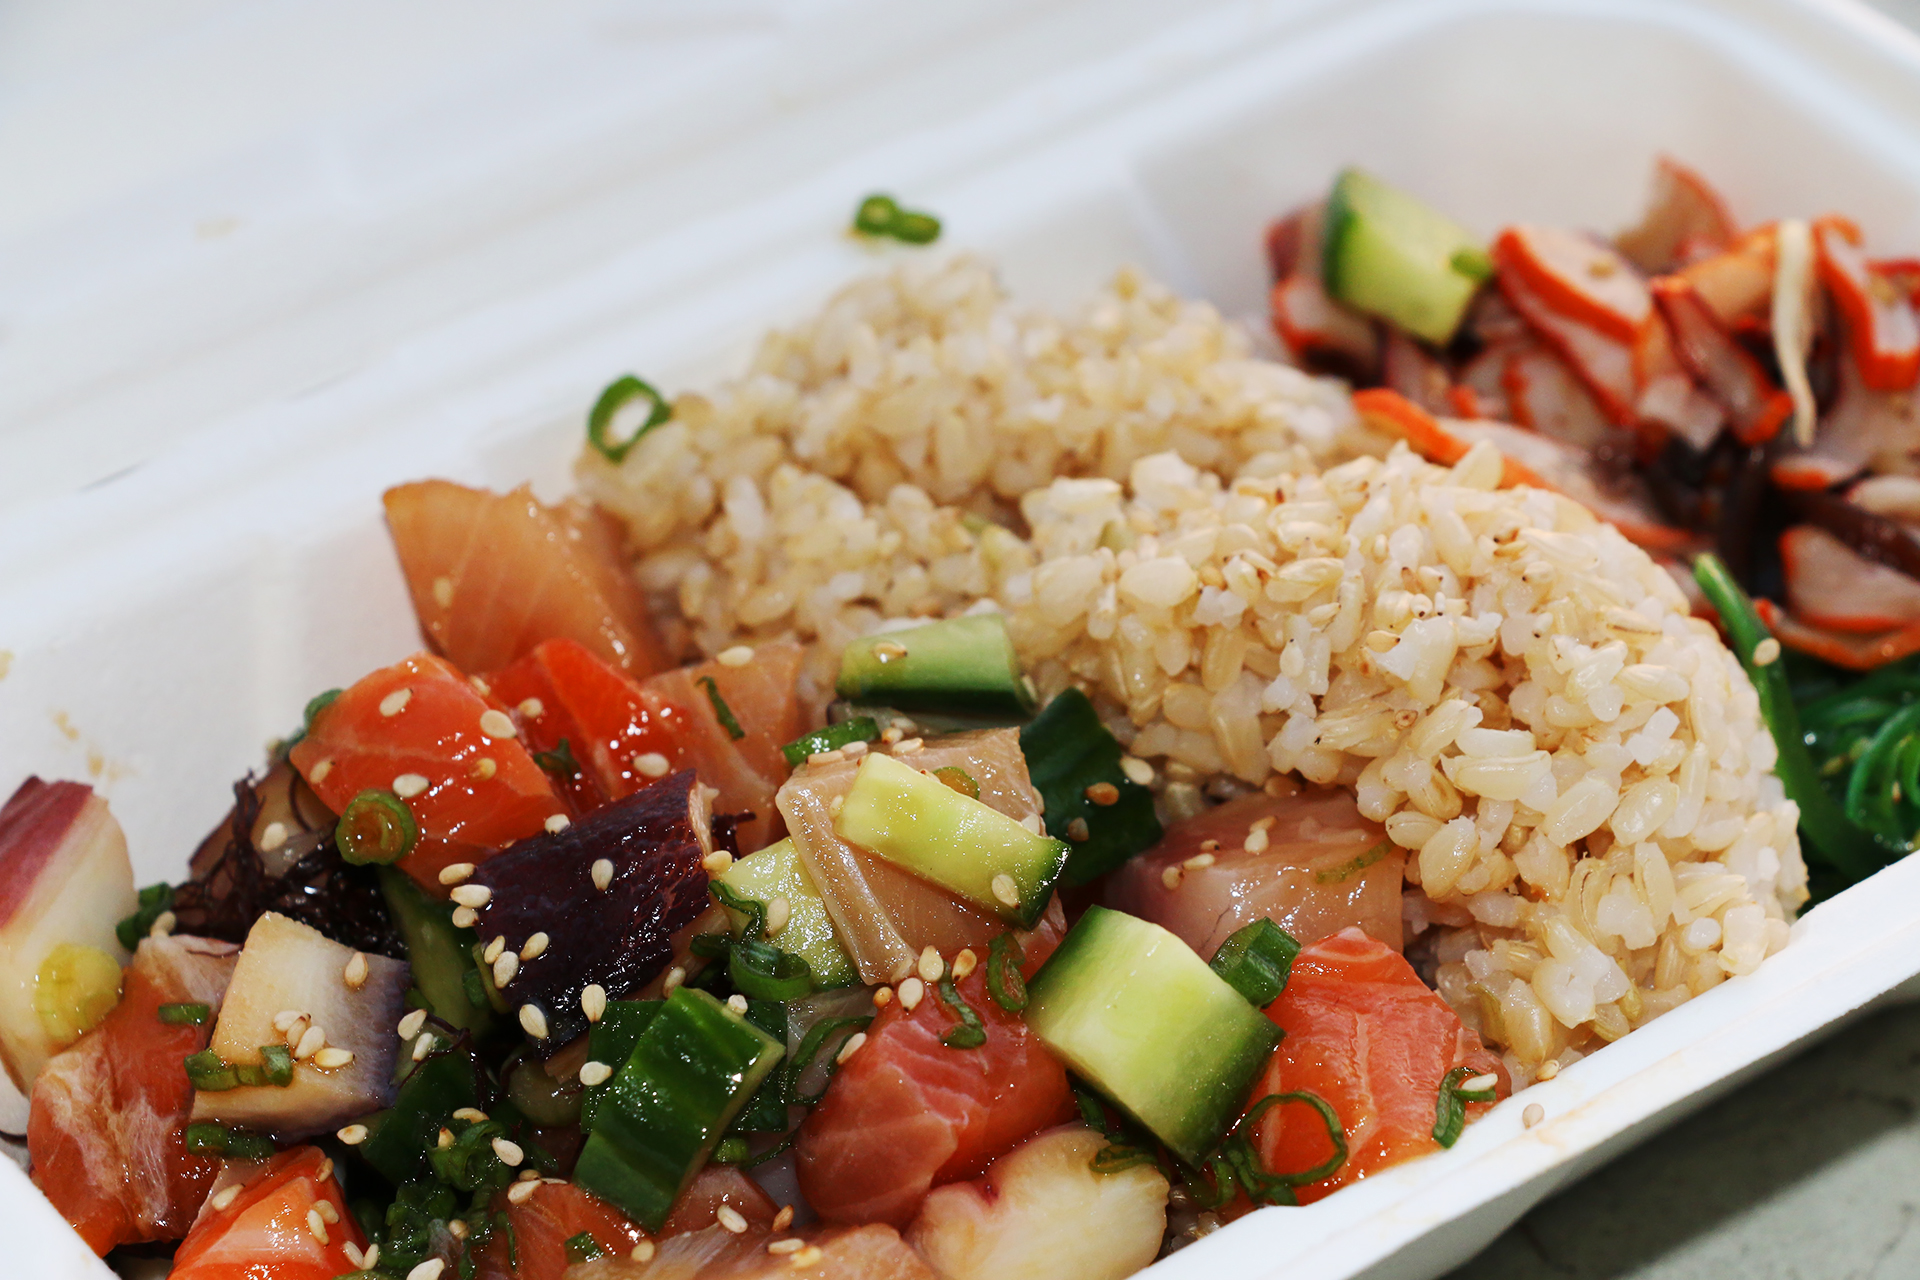 A bowl with salmon, octopus and hamachi on brown rice